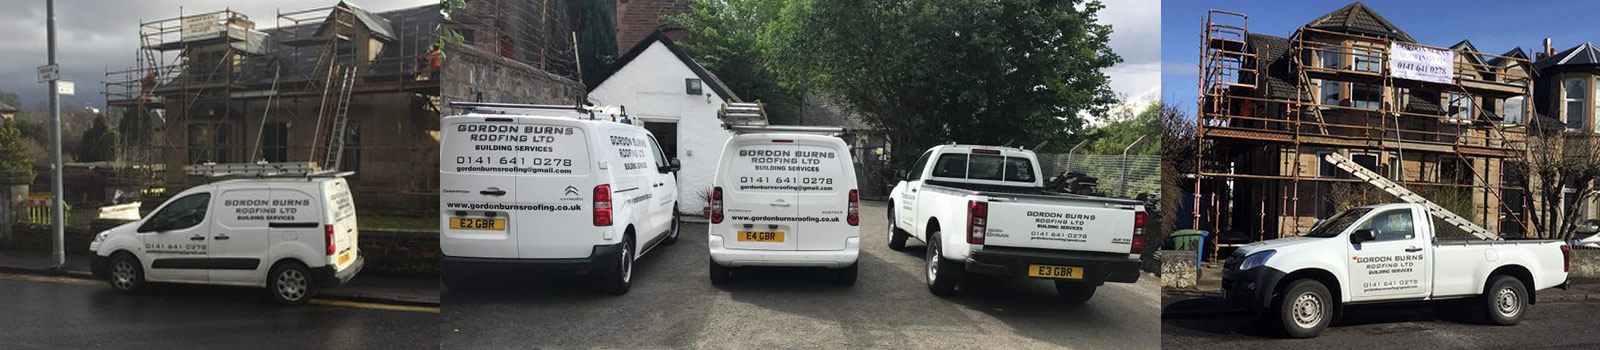 Gordon Burns Roofing Ltd